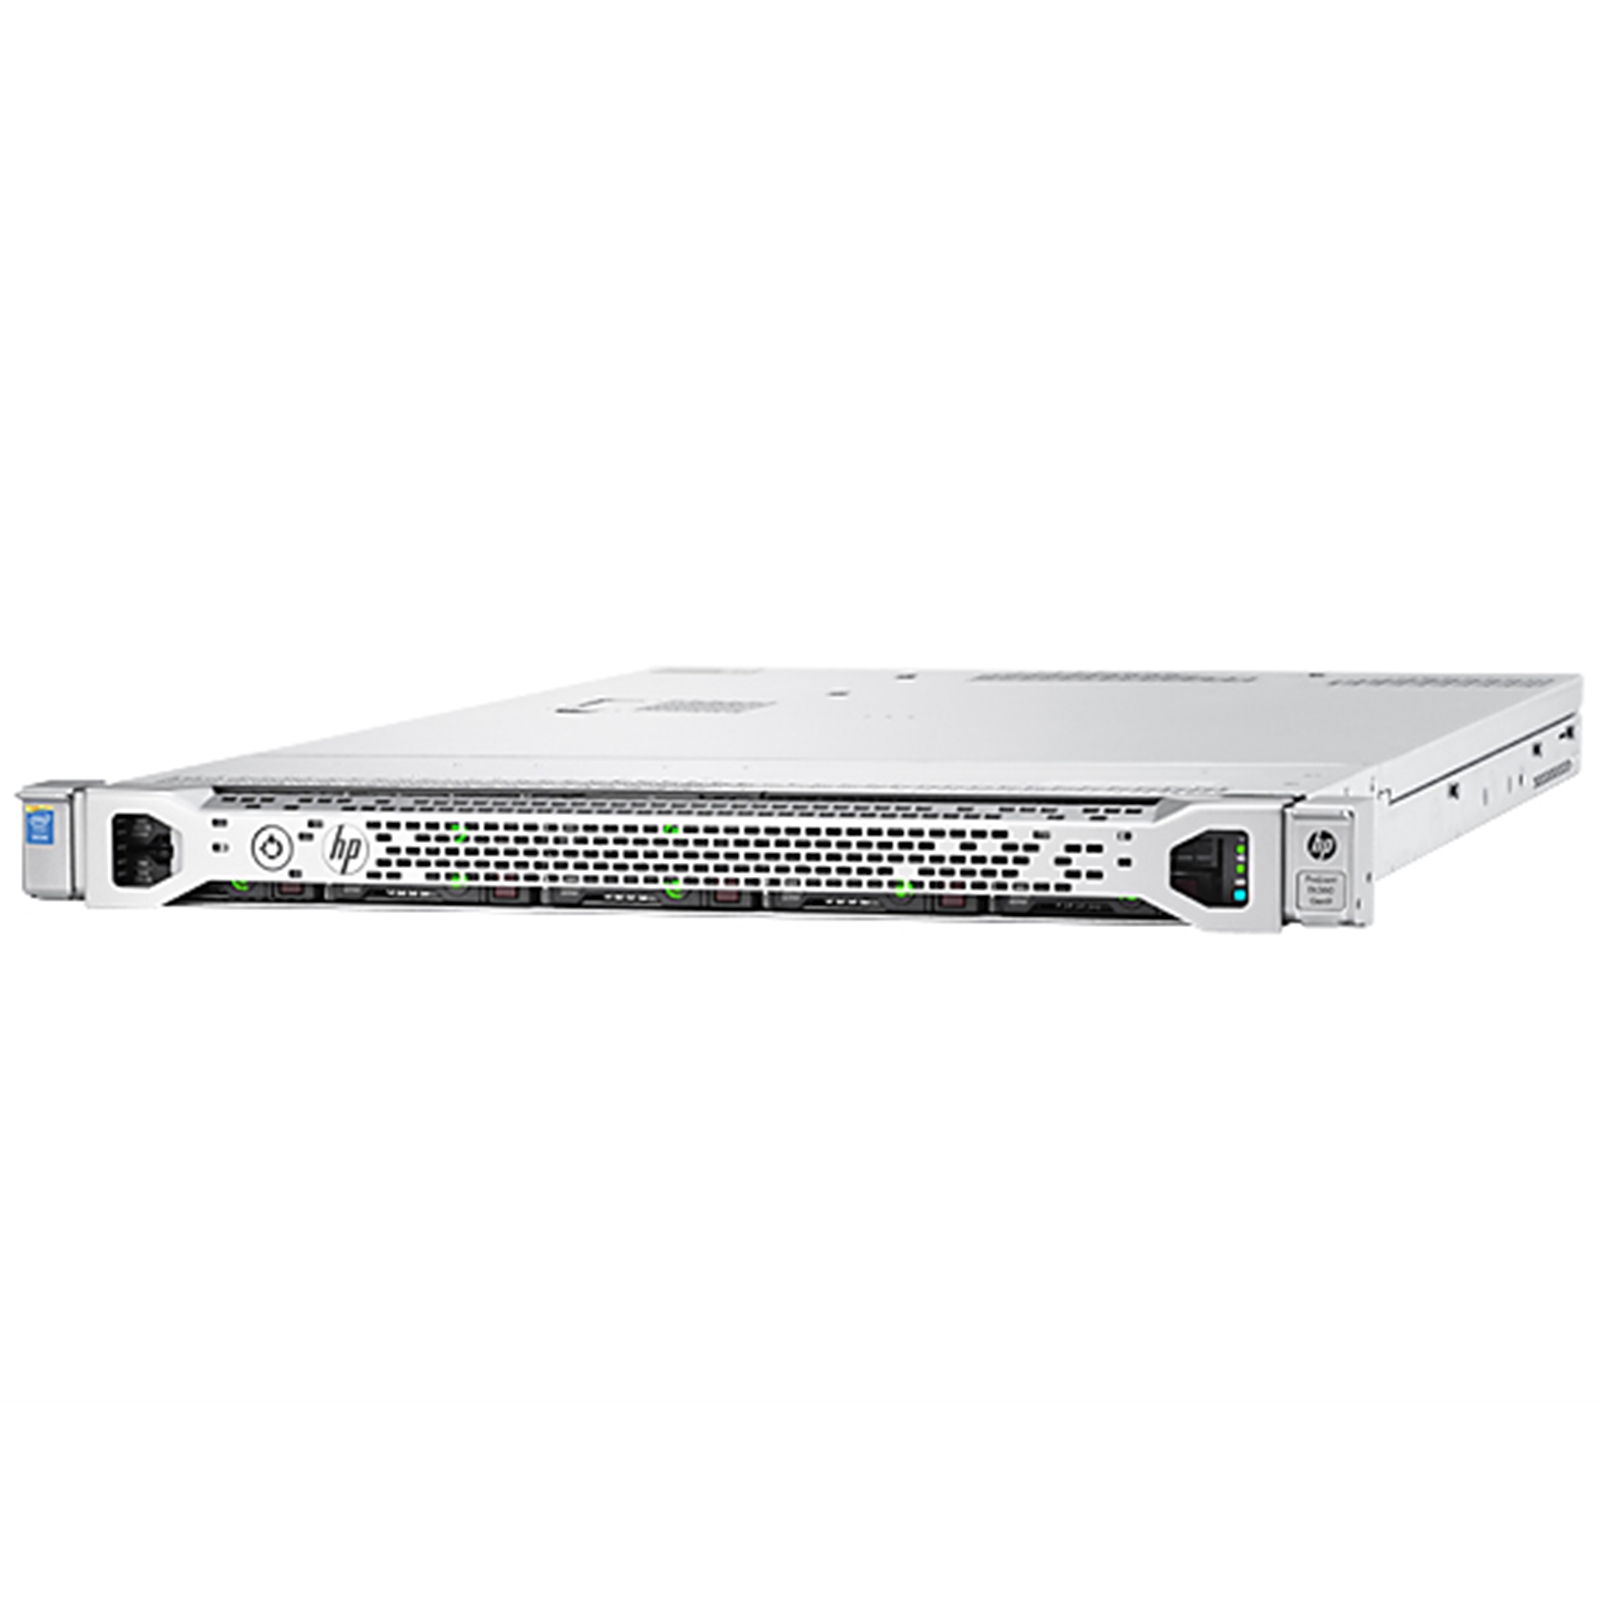 HPE 818208-B21 ENTERPRISE PROLIANT DL360 GEN9 RACK SERVER -